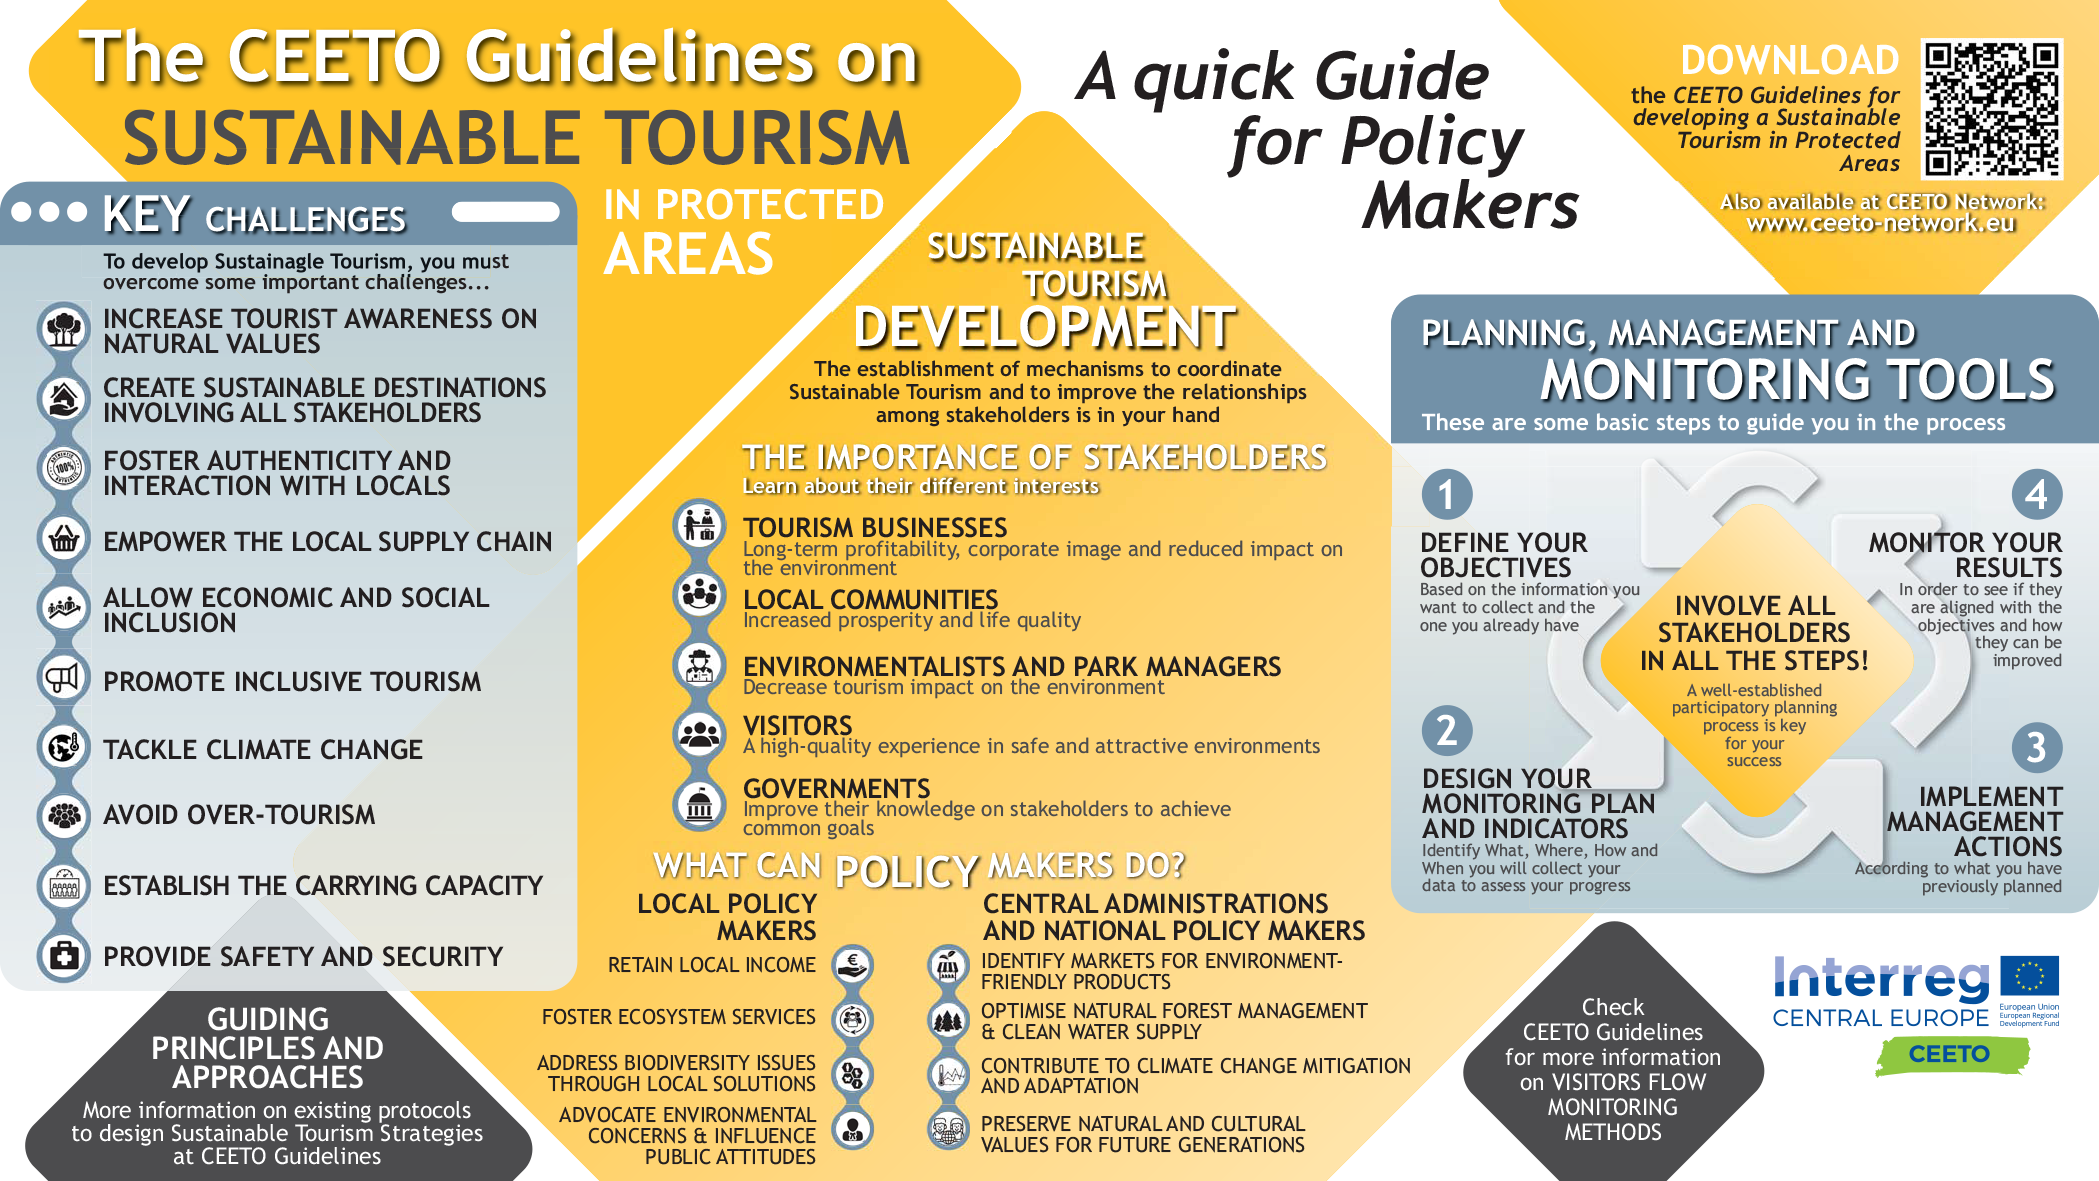 CEETO Guidelines Infographic